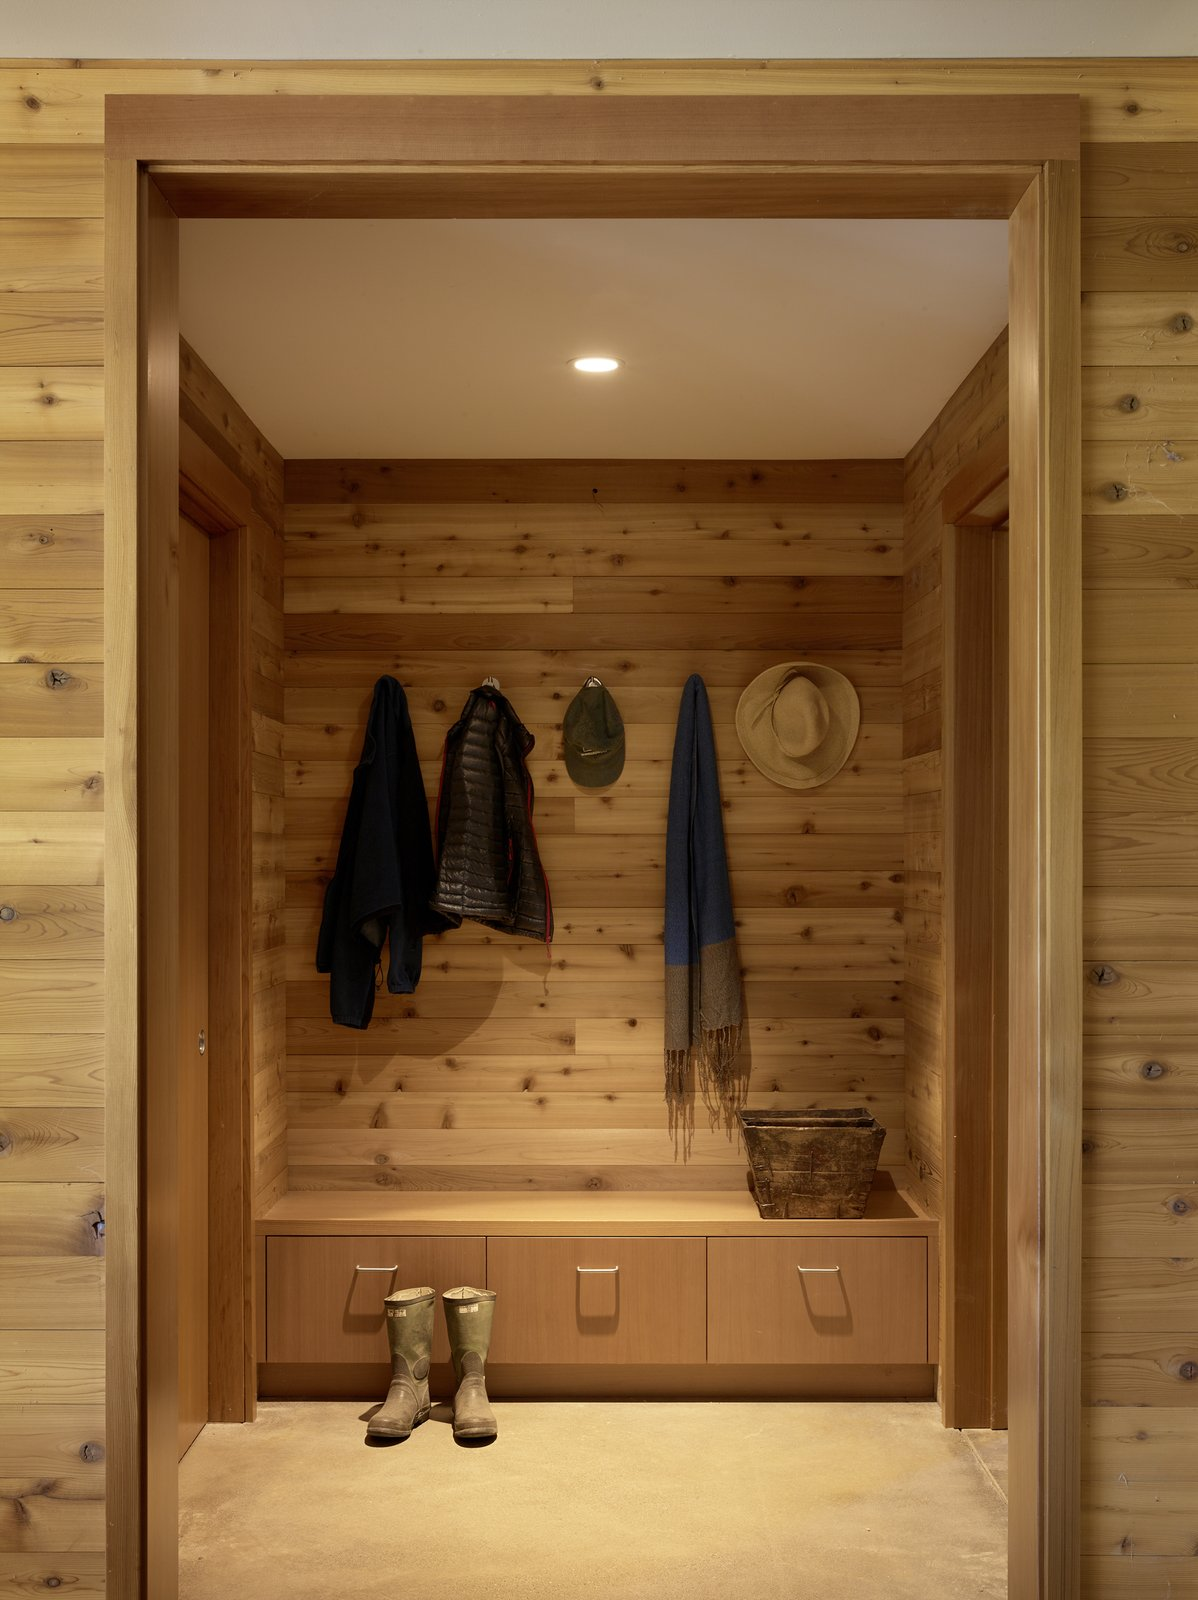 #TurnbullGriffinHaesloop #interior #mudroom  Tagged: Storage Room and Closet Storage Type.  Cloverdale Residence by Turnbull Griffin Haesloop Architects